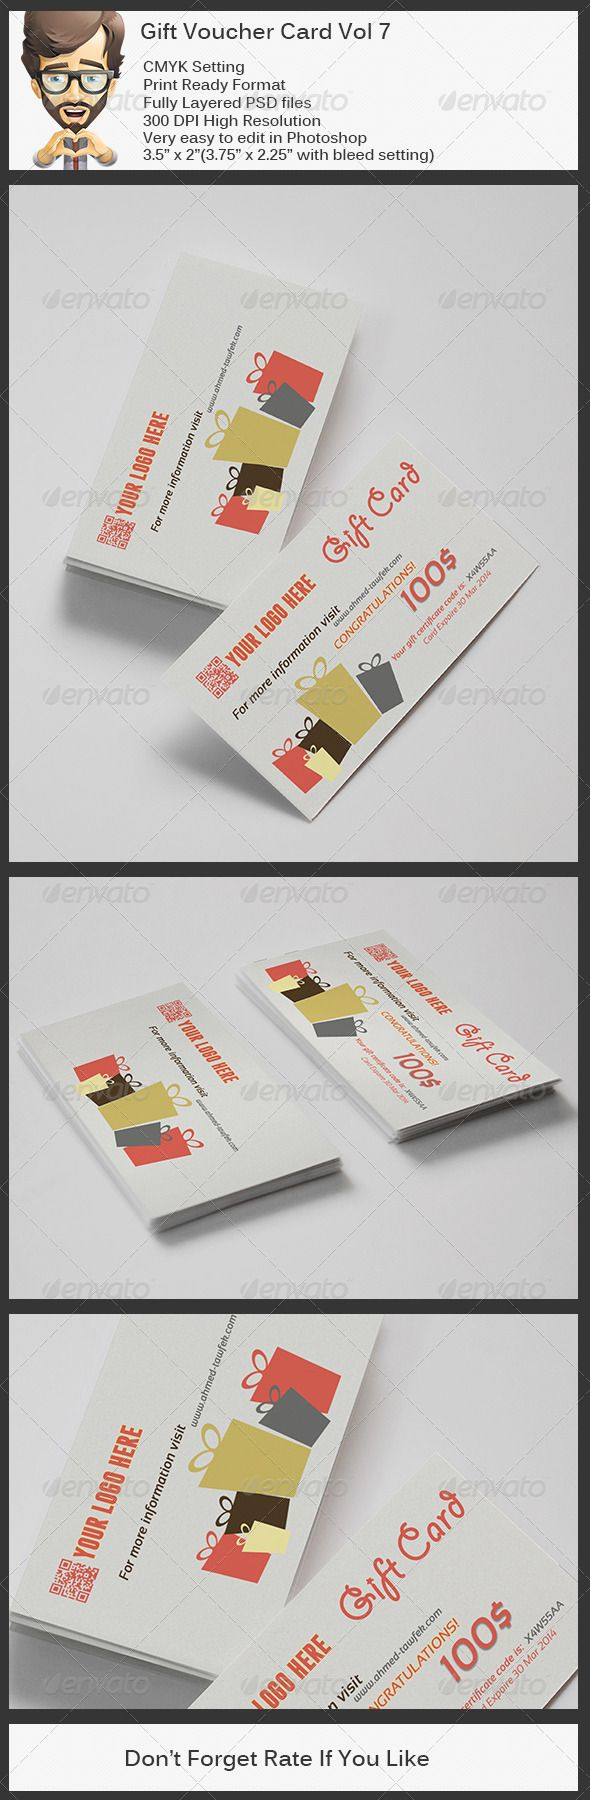 Gift Voucher Format New Gift Voucher Card Vol 7  Psd Template  Only Available Here ➝ Http .